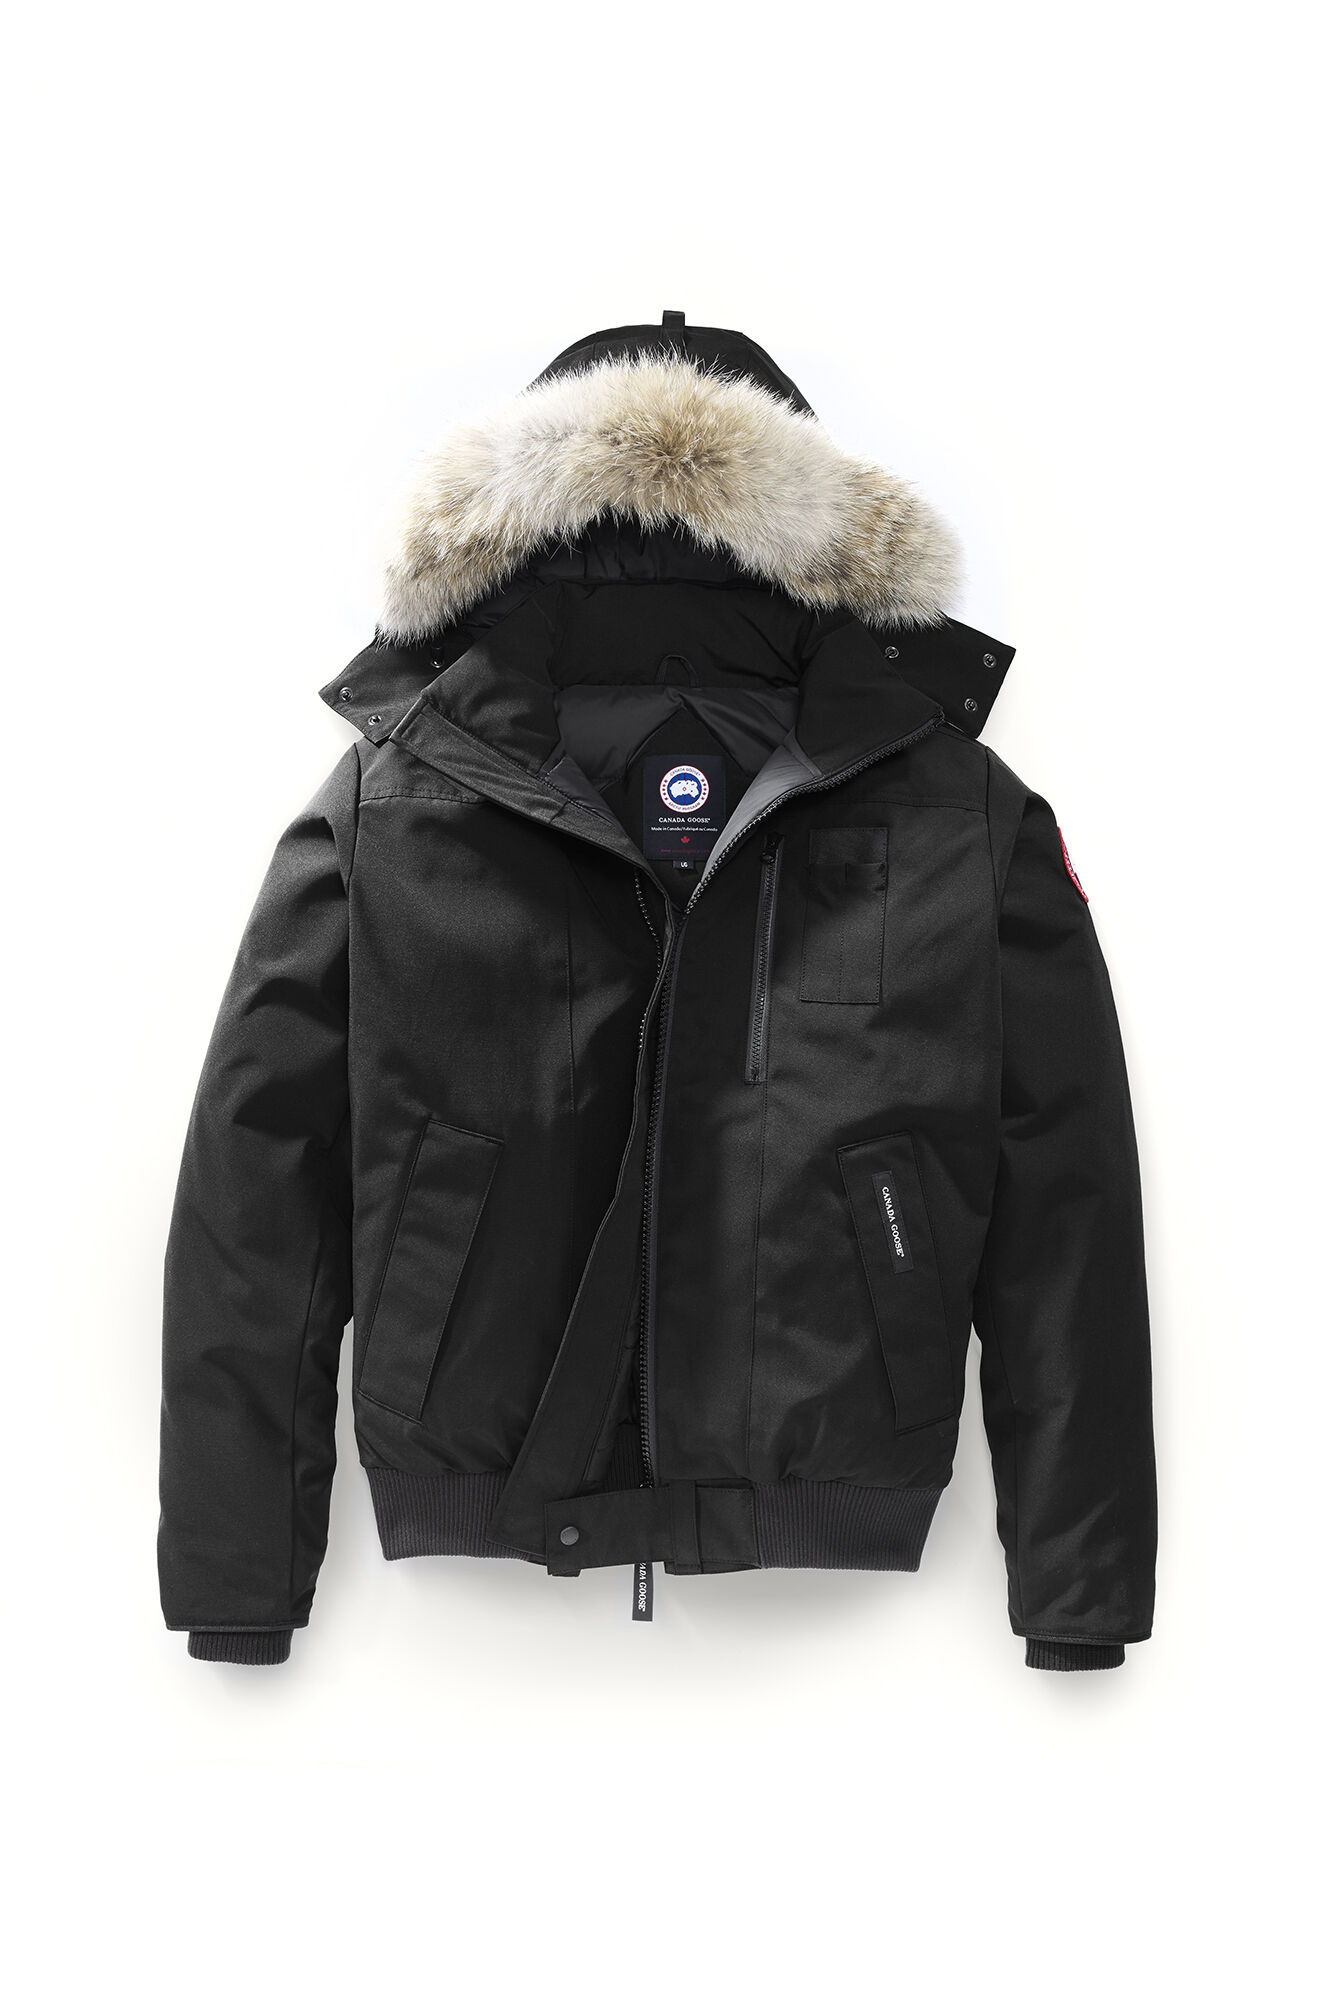 Canada Goose Black Label Patch